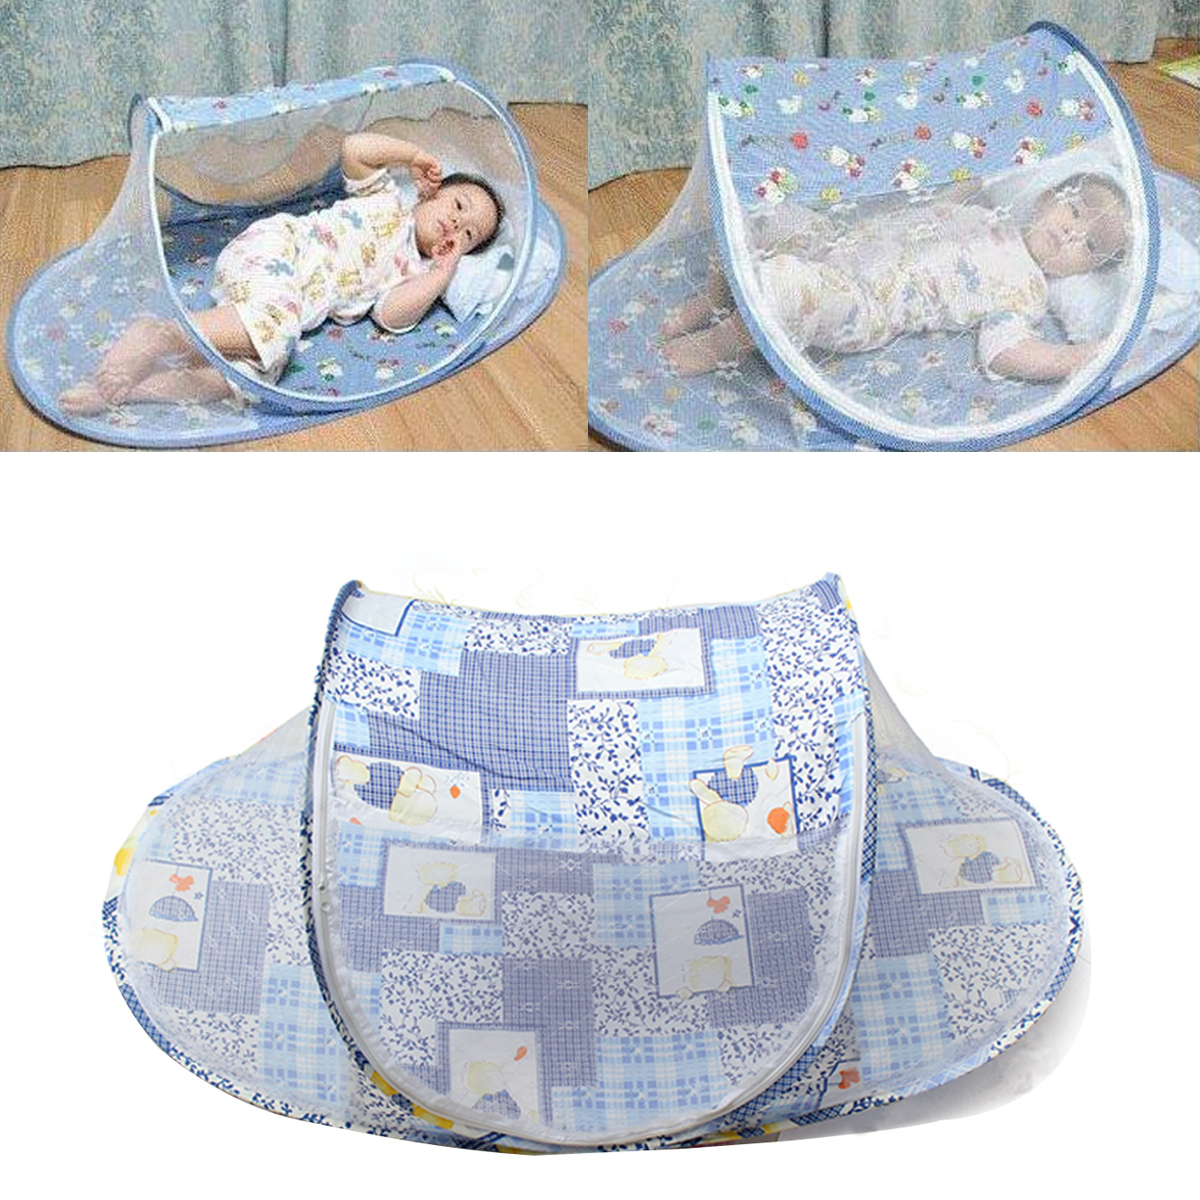 Baby bed net - Image Is Loading Portable Foldable Baby Mosquito Tent Travel Infant Bed